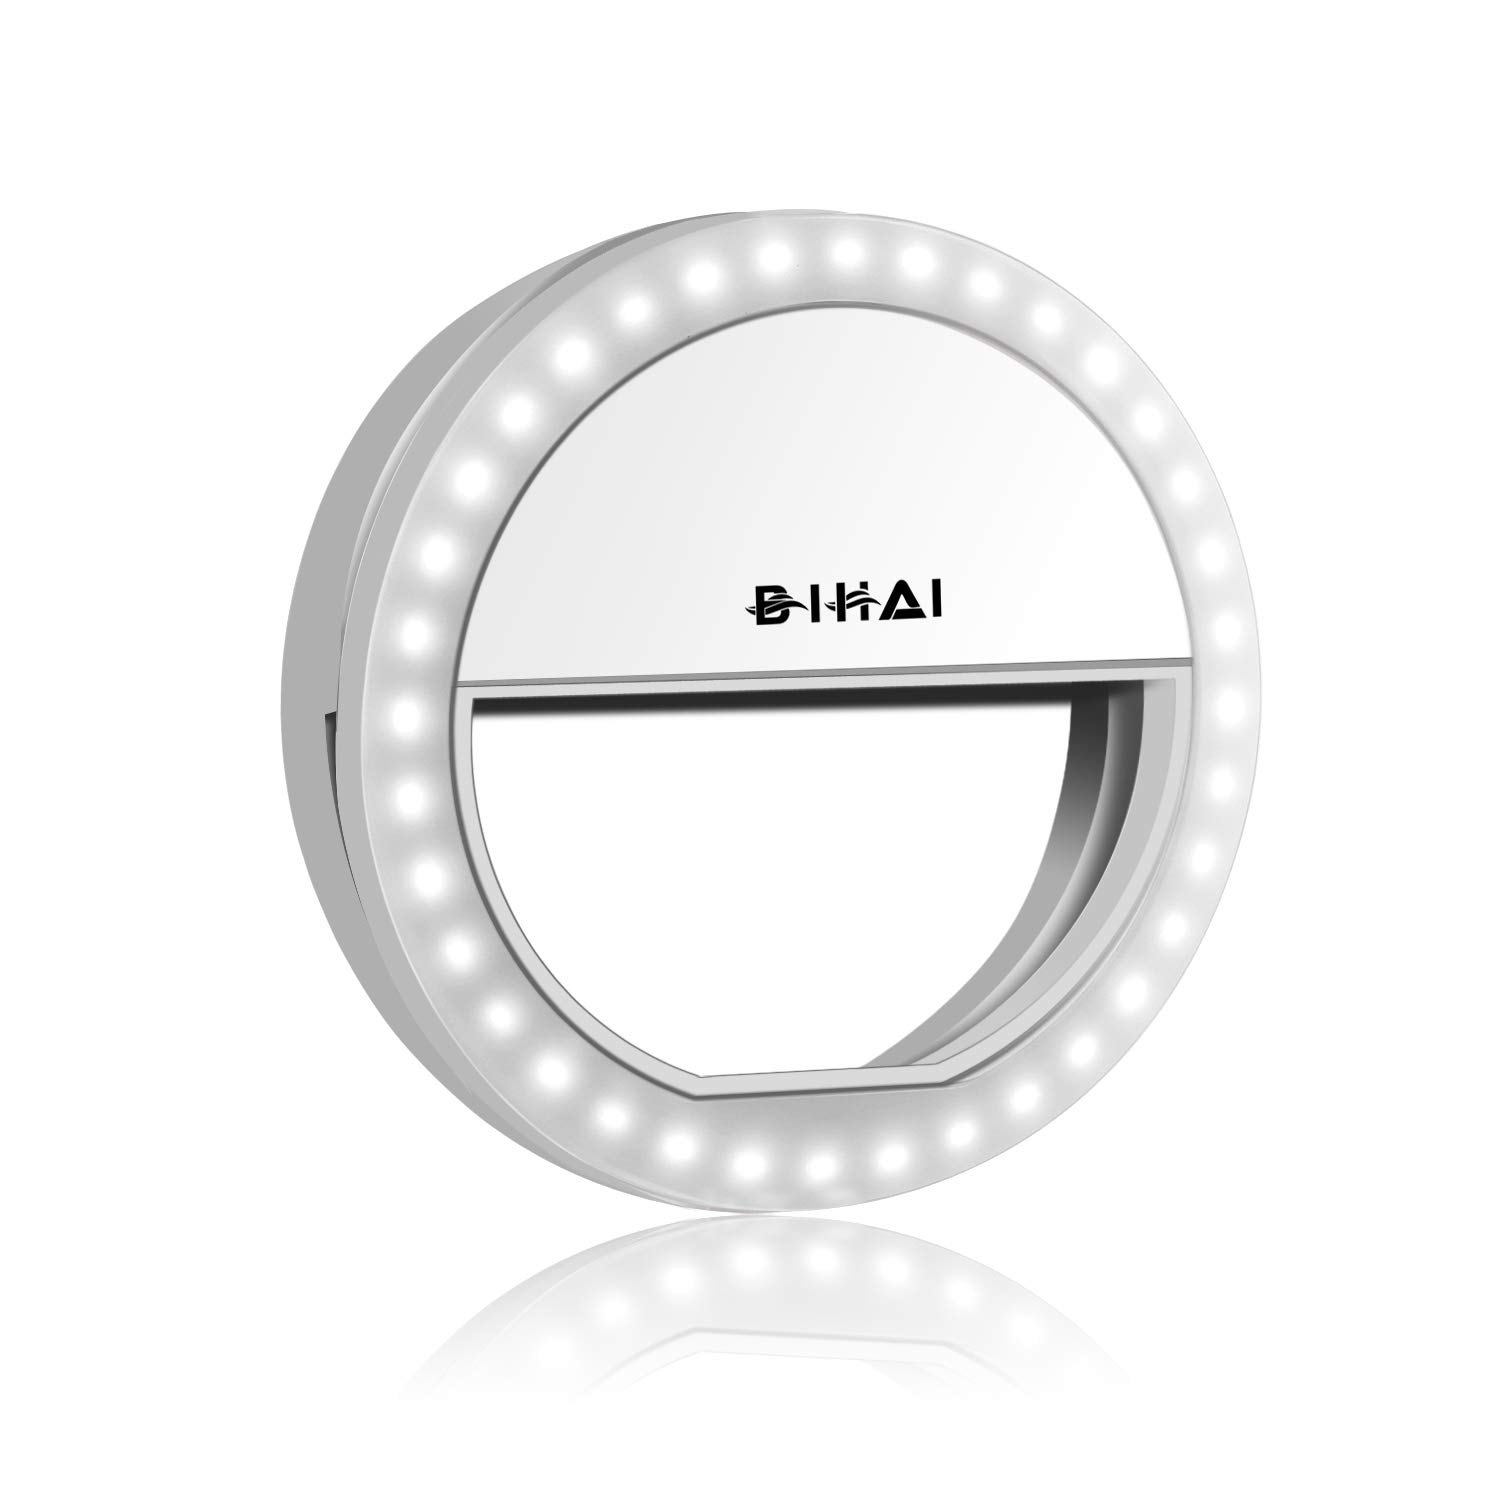 Clip on Selfie Ring Light with 36 LED Bulbs, 4-Level Adjustable Brightness Circle Lights USB Rechargeable for Cell Phone, Laptop Camera, Photography, Makeup BIHAI DCB3A